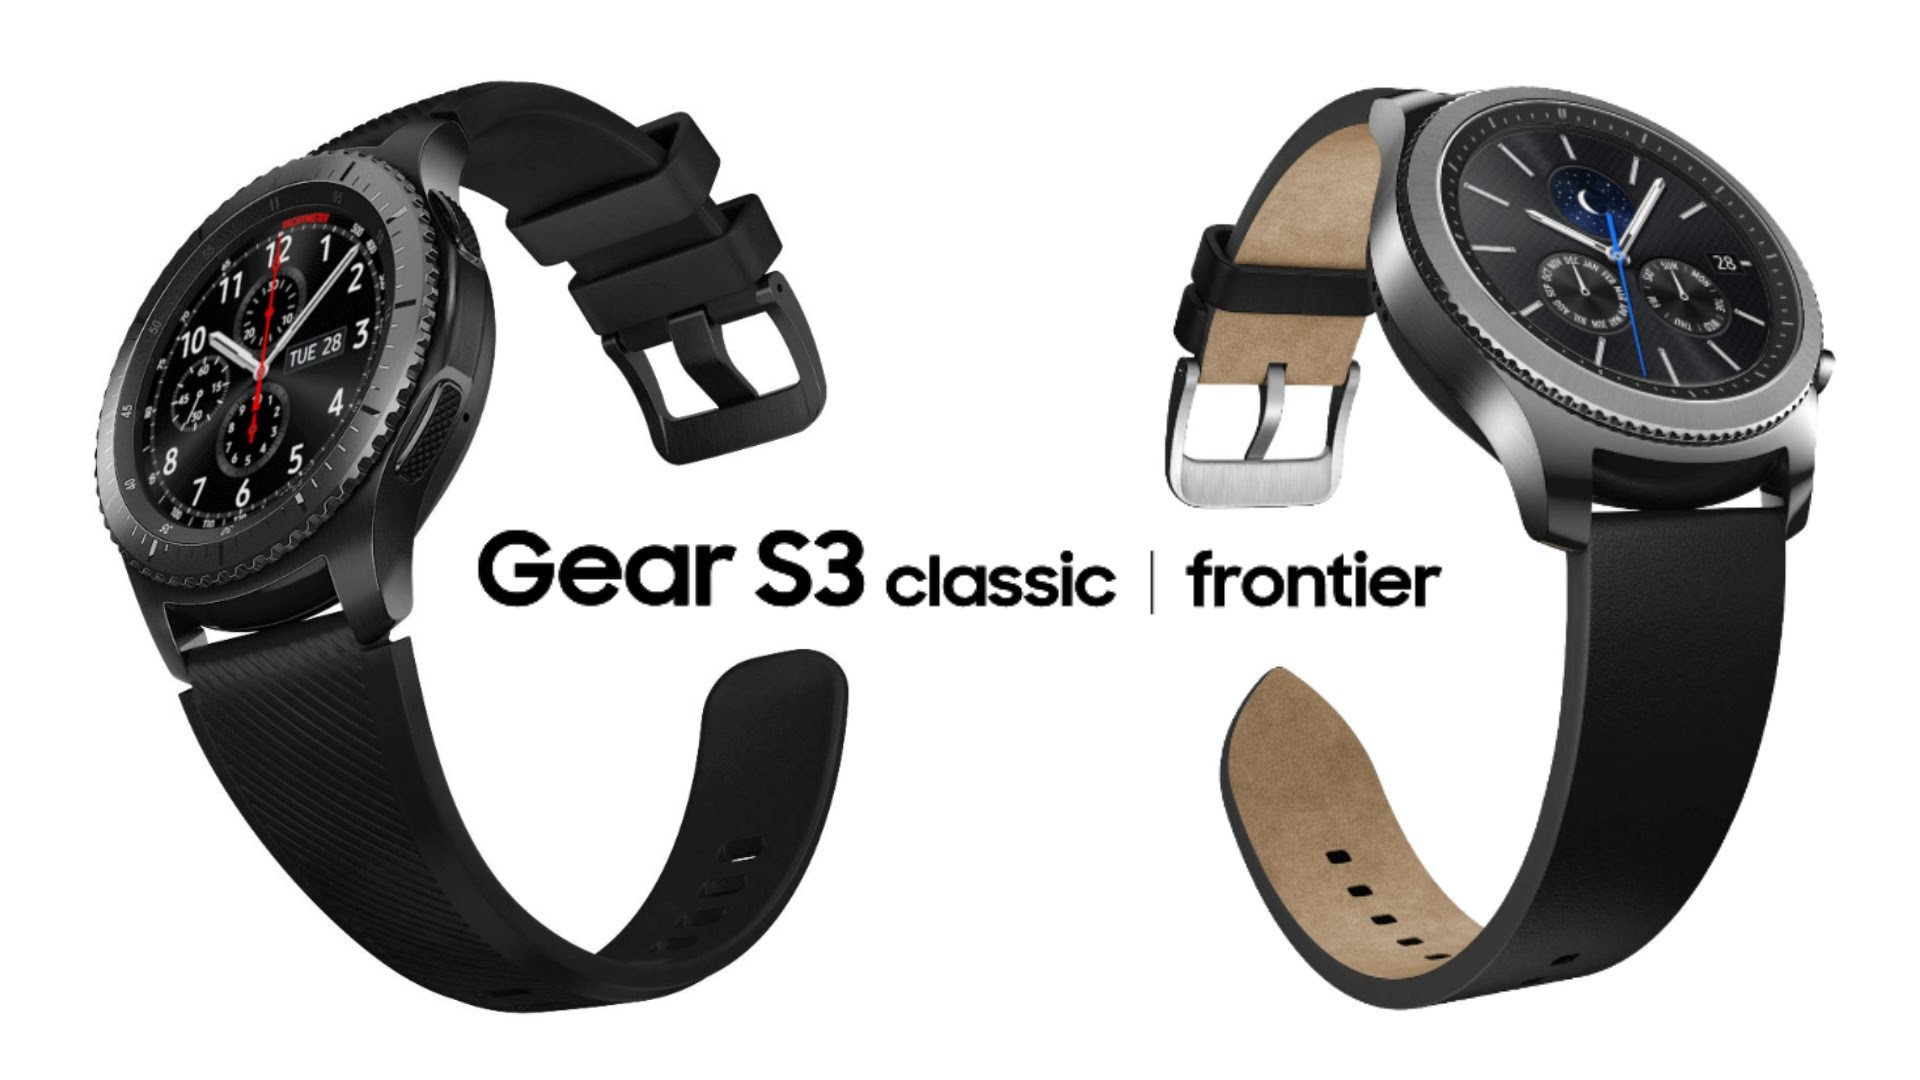 Gear S3 Classic LTE now available from Verizon, AT&T, and T